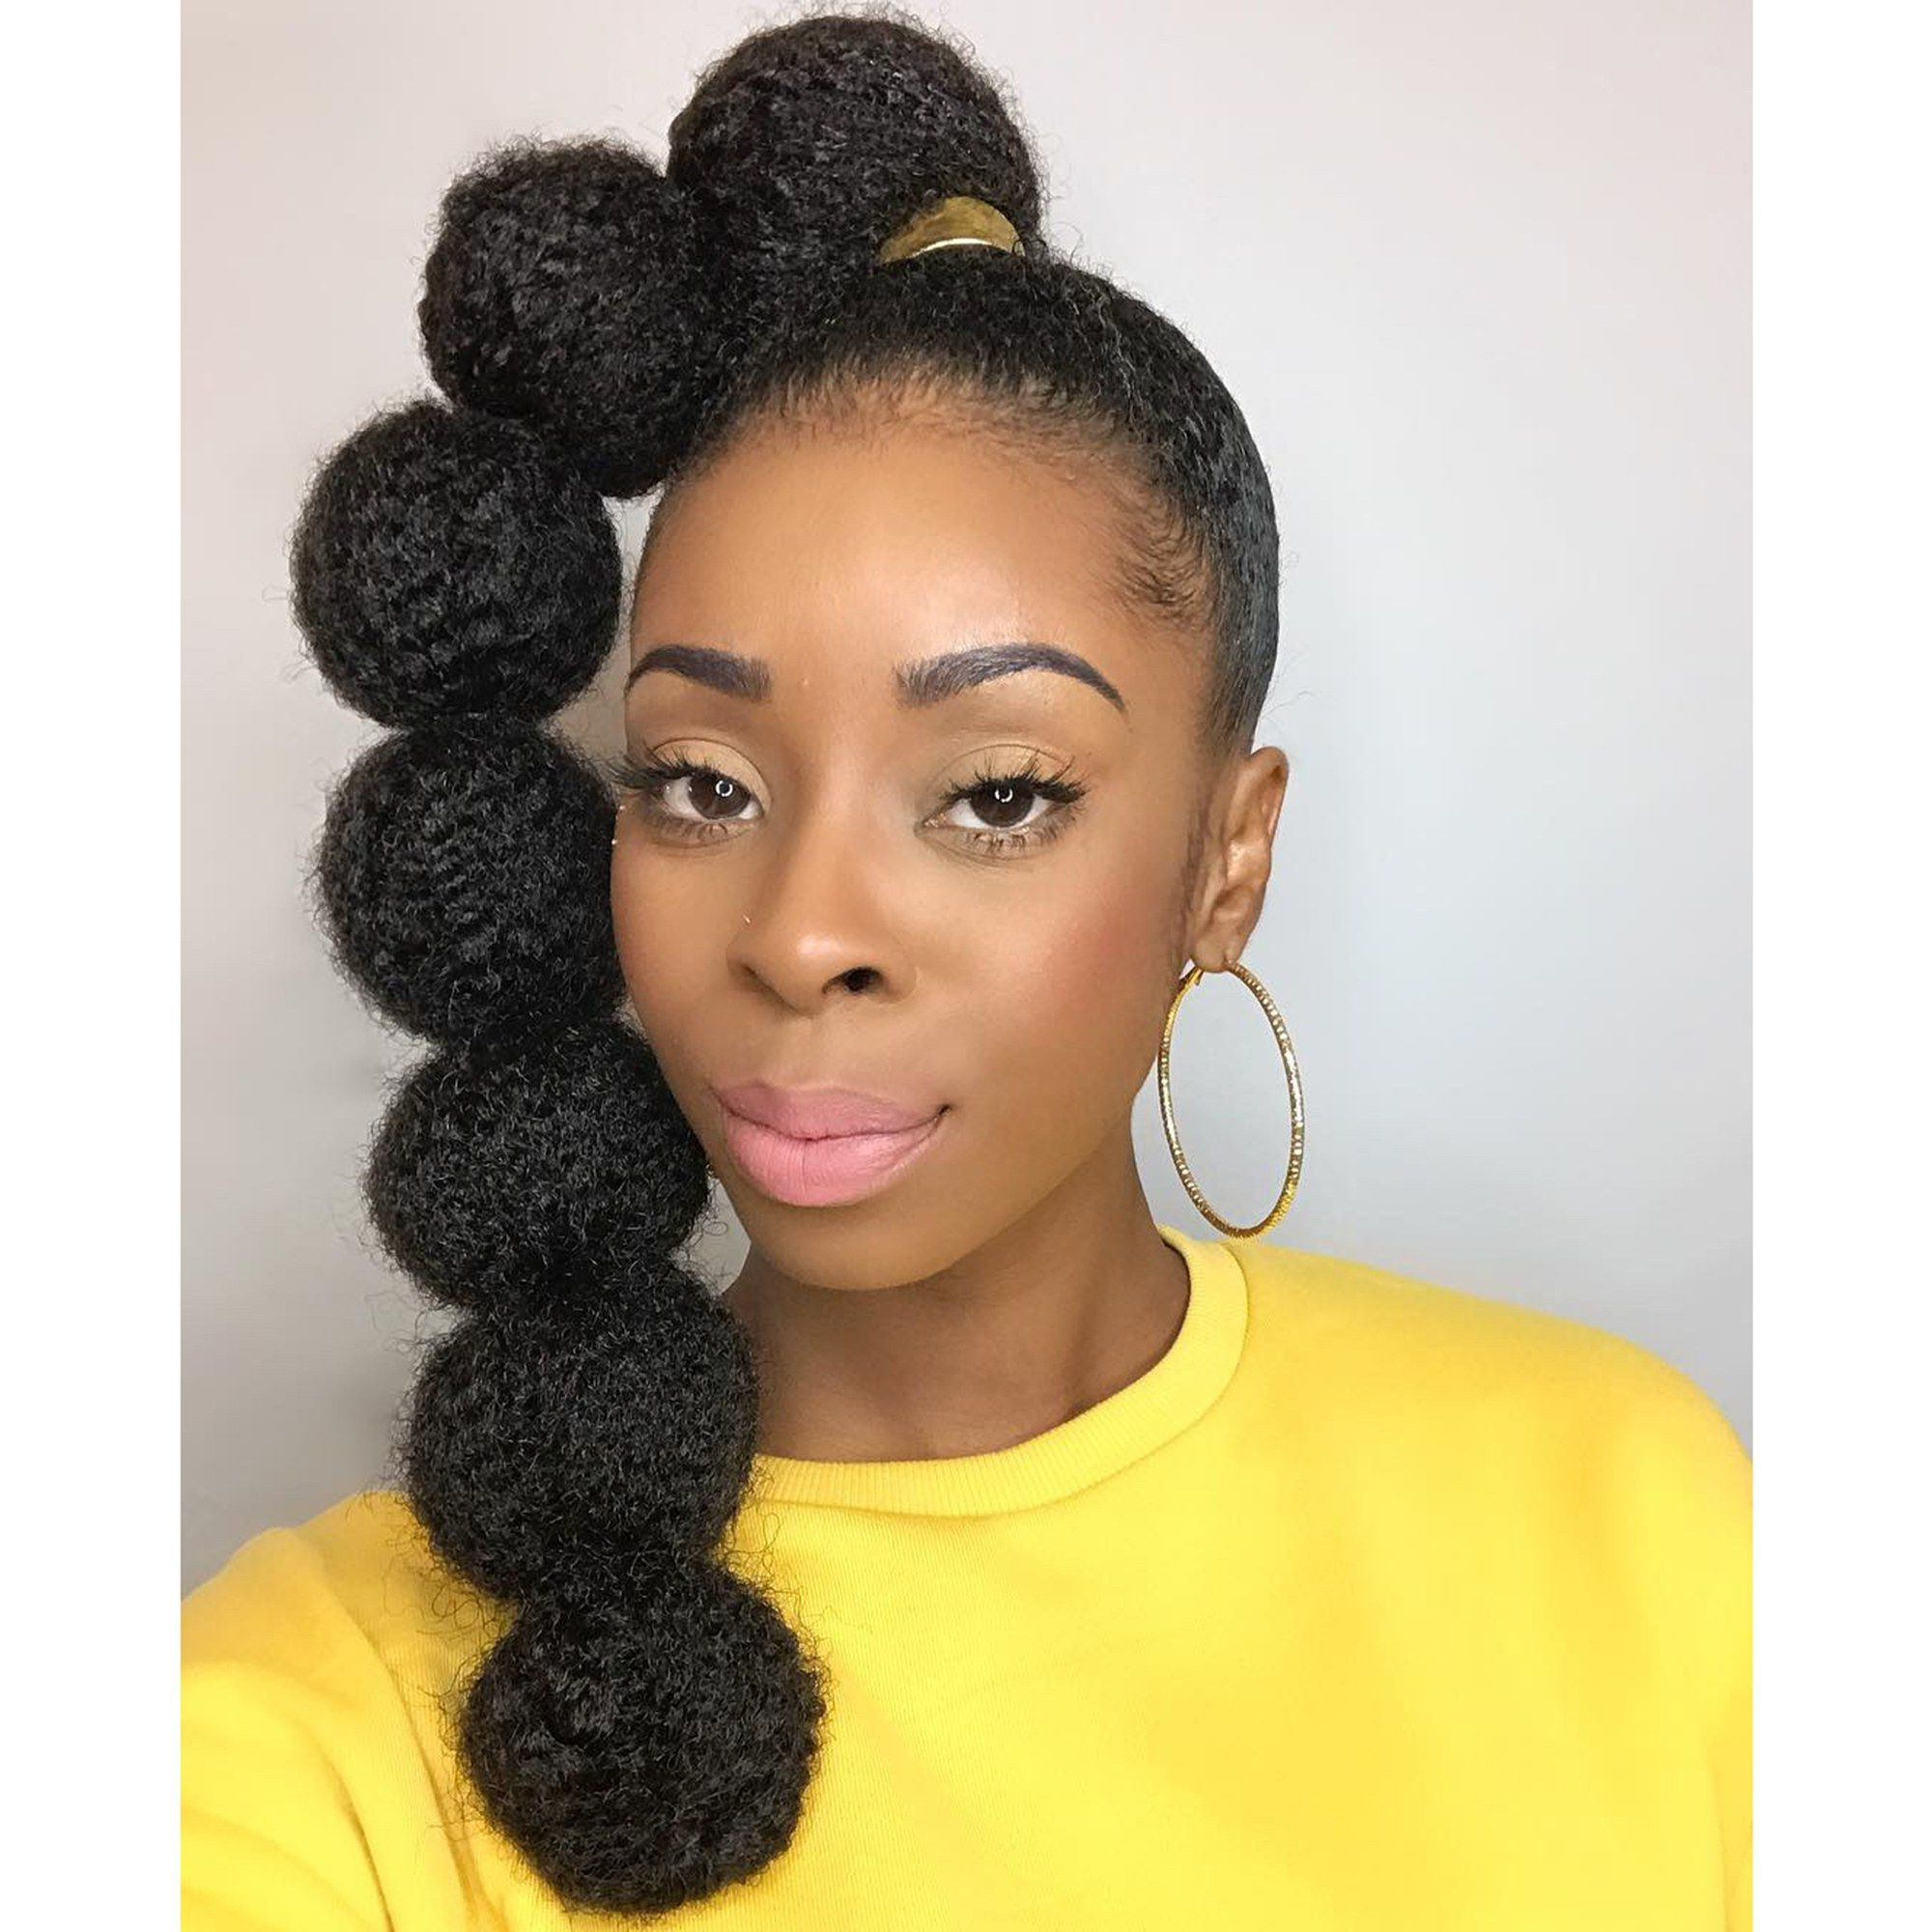 Afro Puff Bubble Ponytails Are Trending On Instagram With Regard To Well Known Bubble Pony Updo Hairstyles (Gallery 13 of 20)